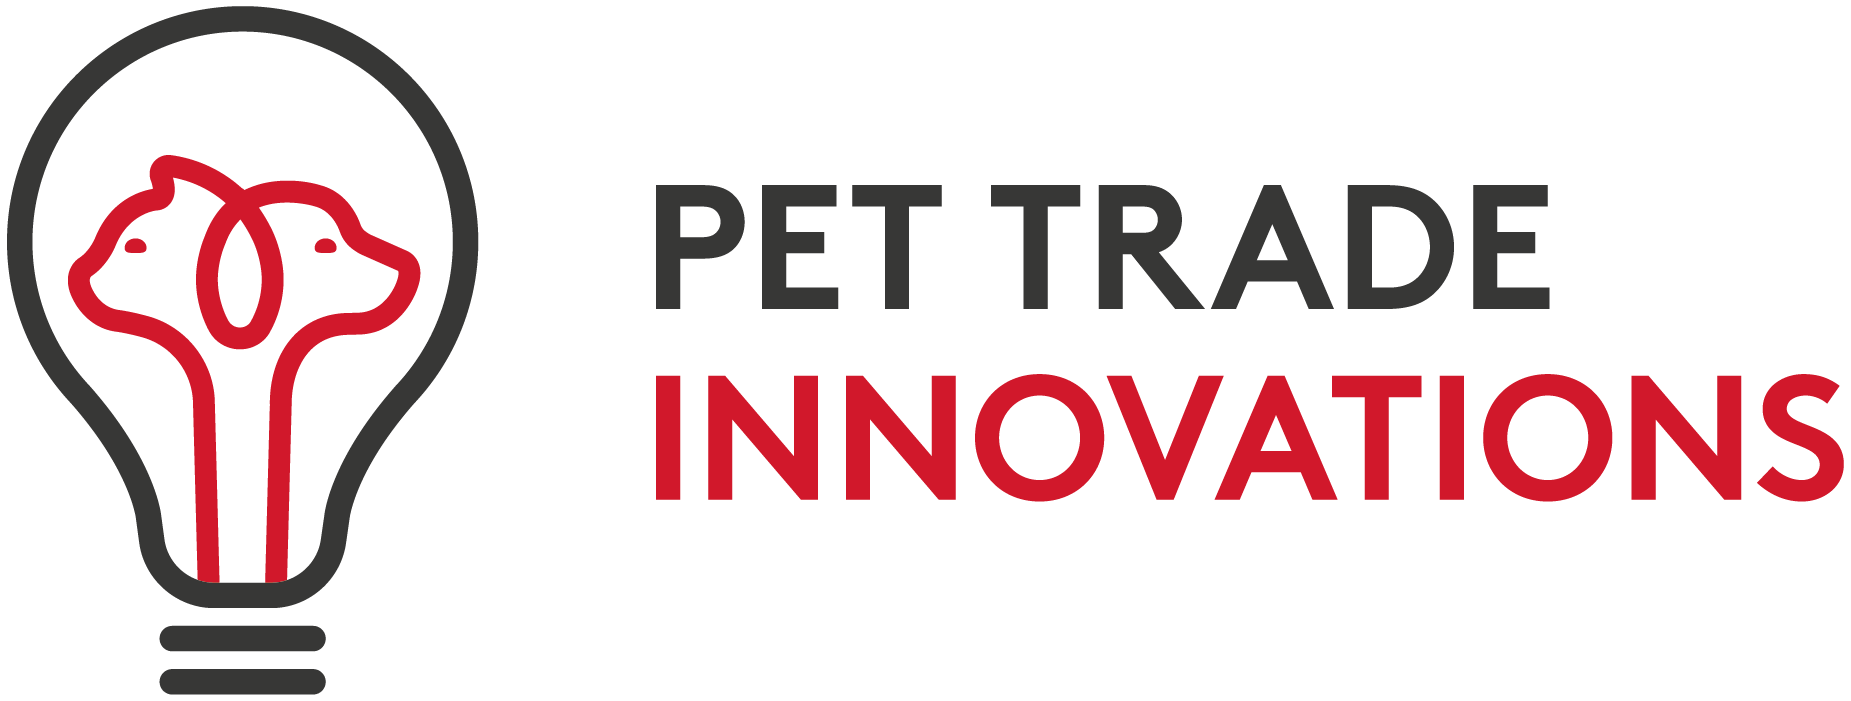 Pet Trade Innovations